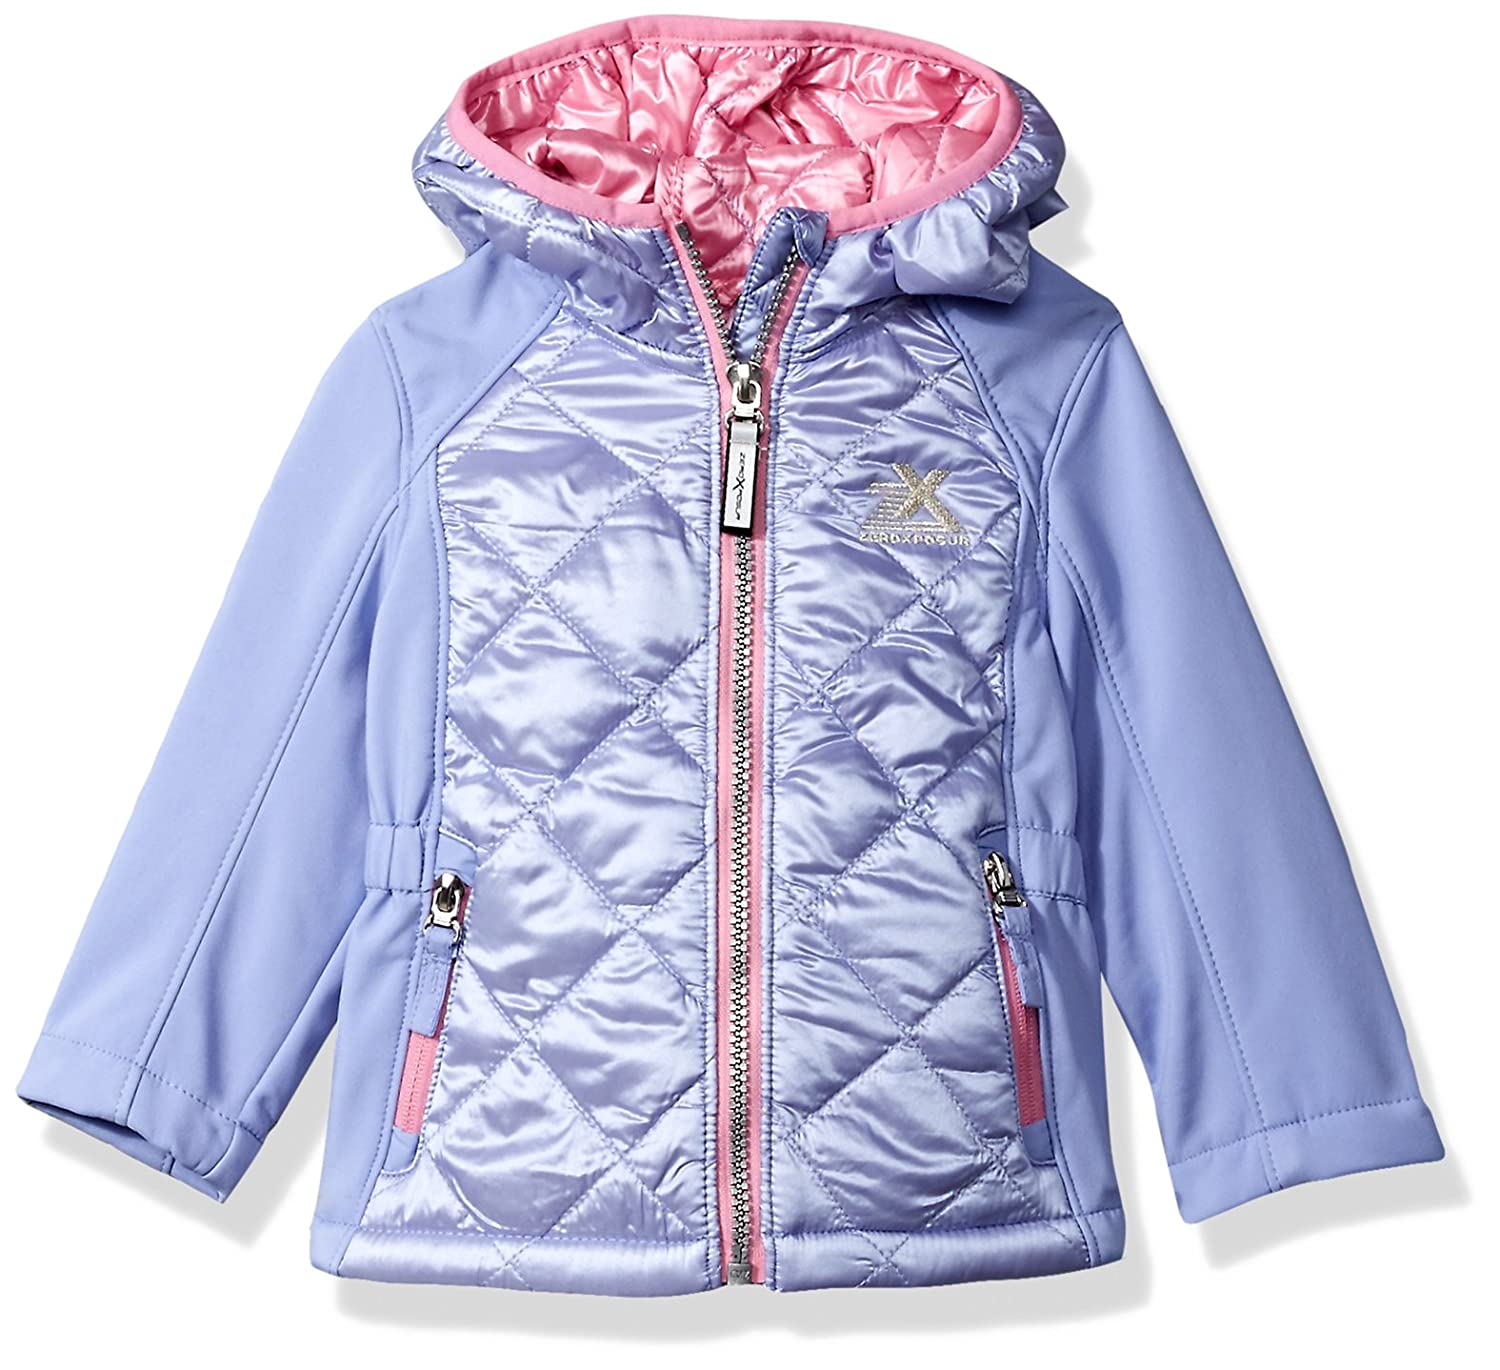 ZeroXposur Baby Girls Infant Eleanor Transitional Jacket